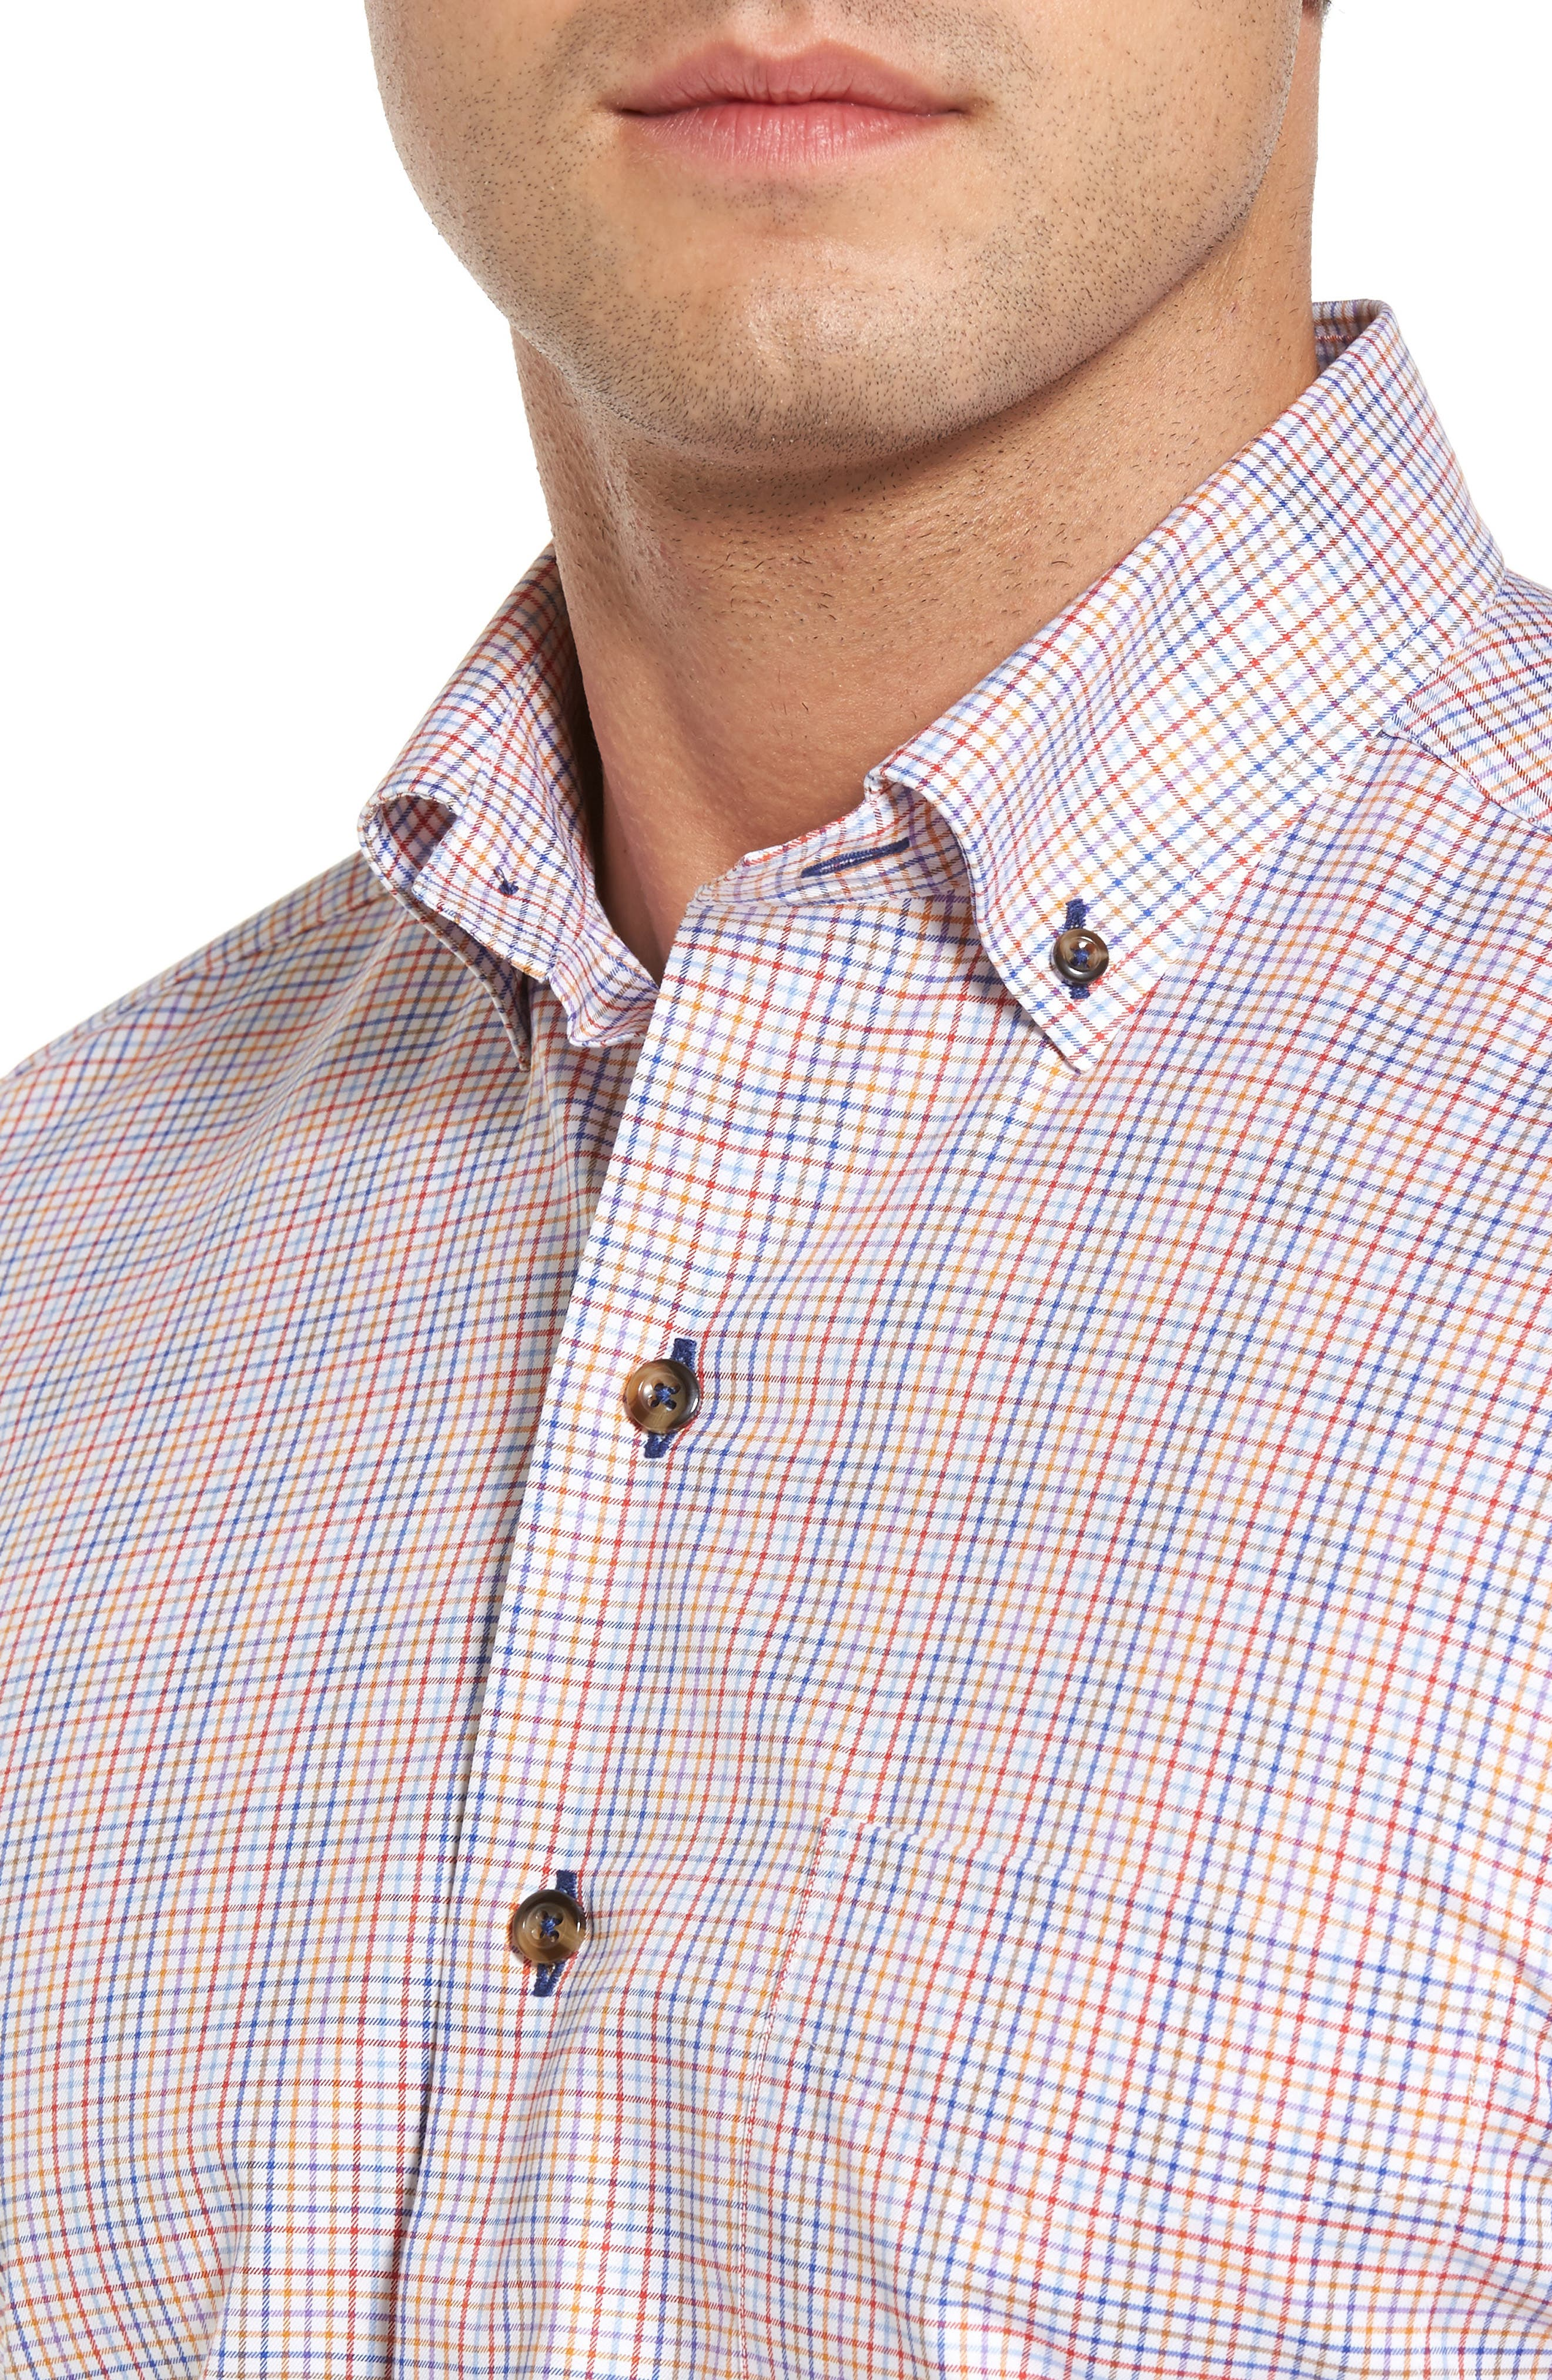 Regular Fit Plaid Sport Shirt,                             Alternate thumbnail 4, color,                             Blue/ Red